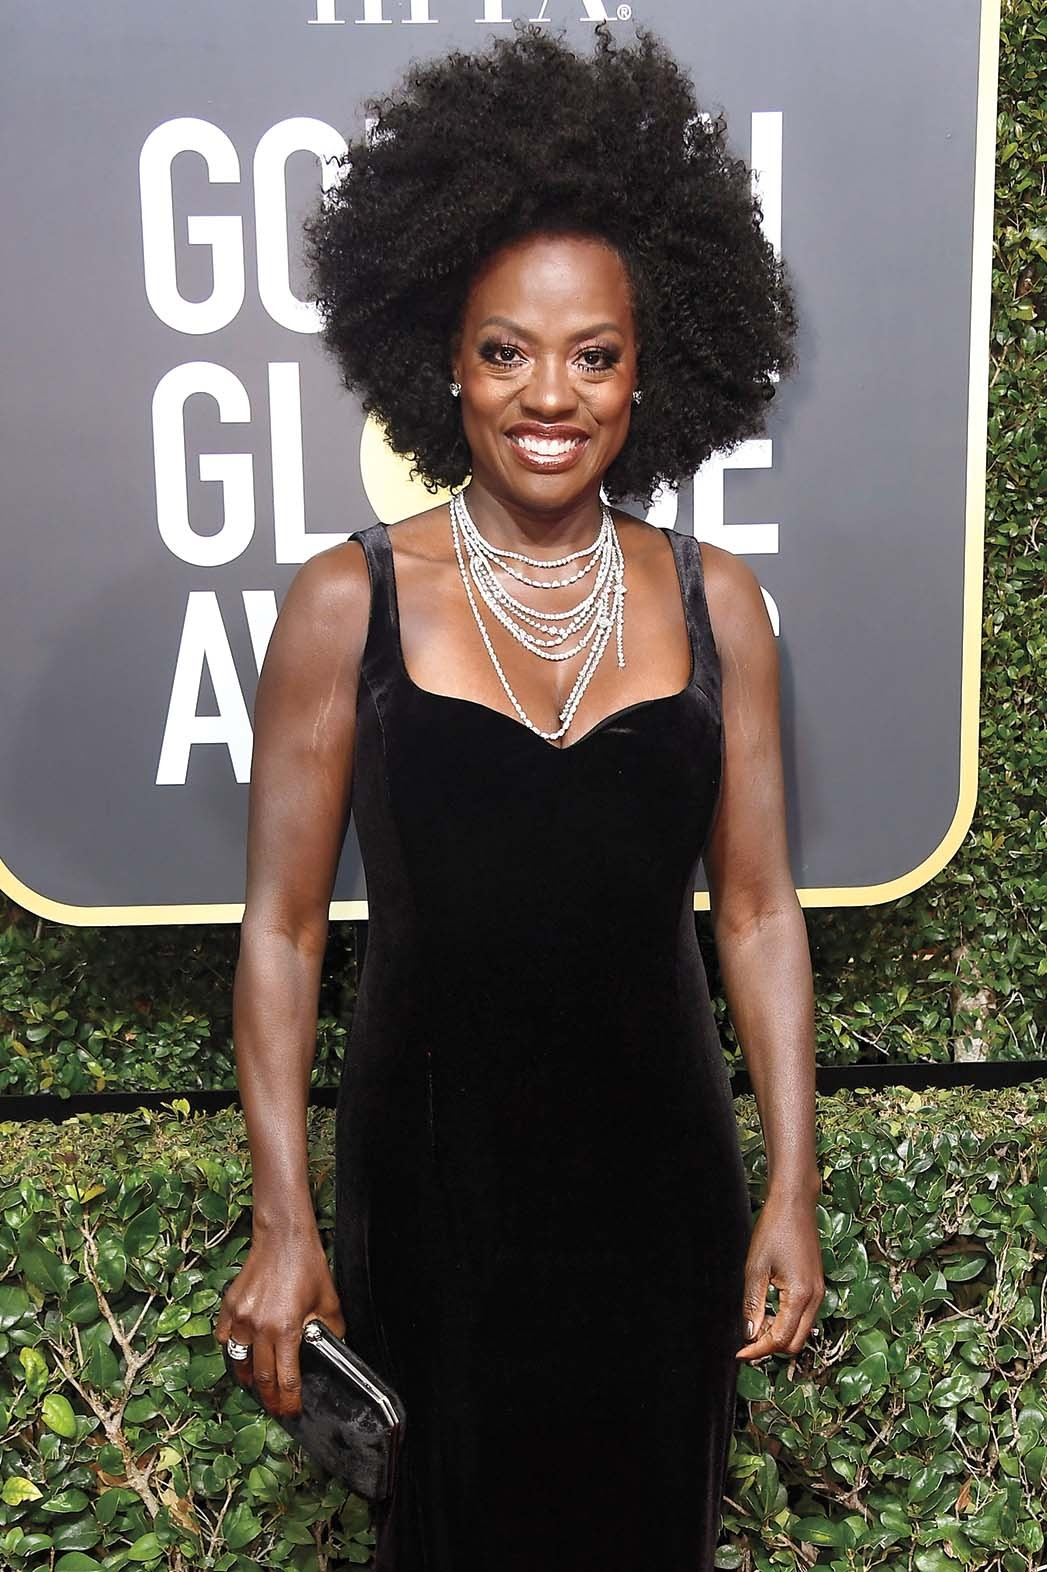 """Viola Davis and Other Actors Who Played Lawyers Ask Real Lawyers to Help """"Protect the Election"""""""